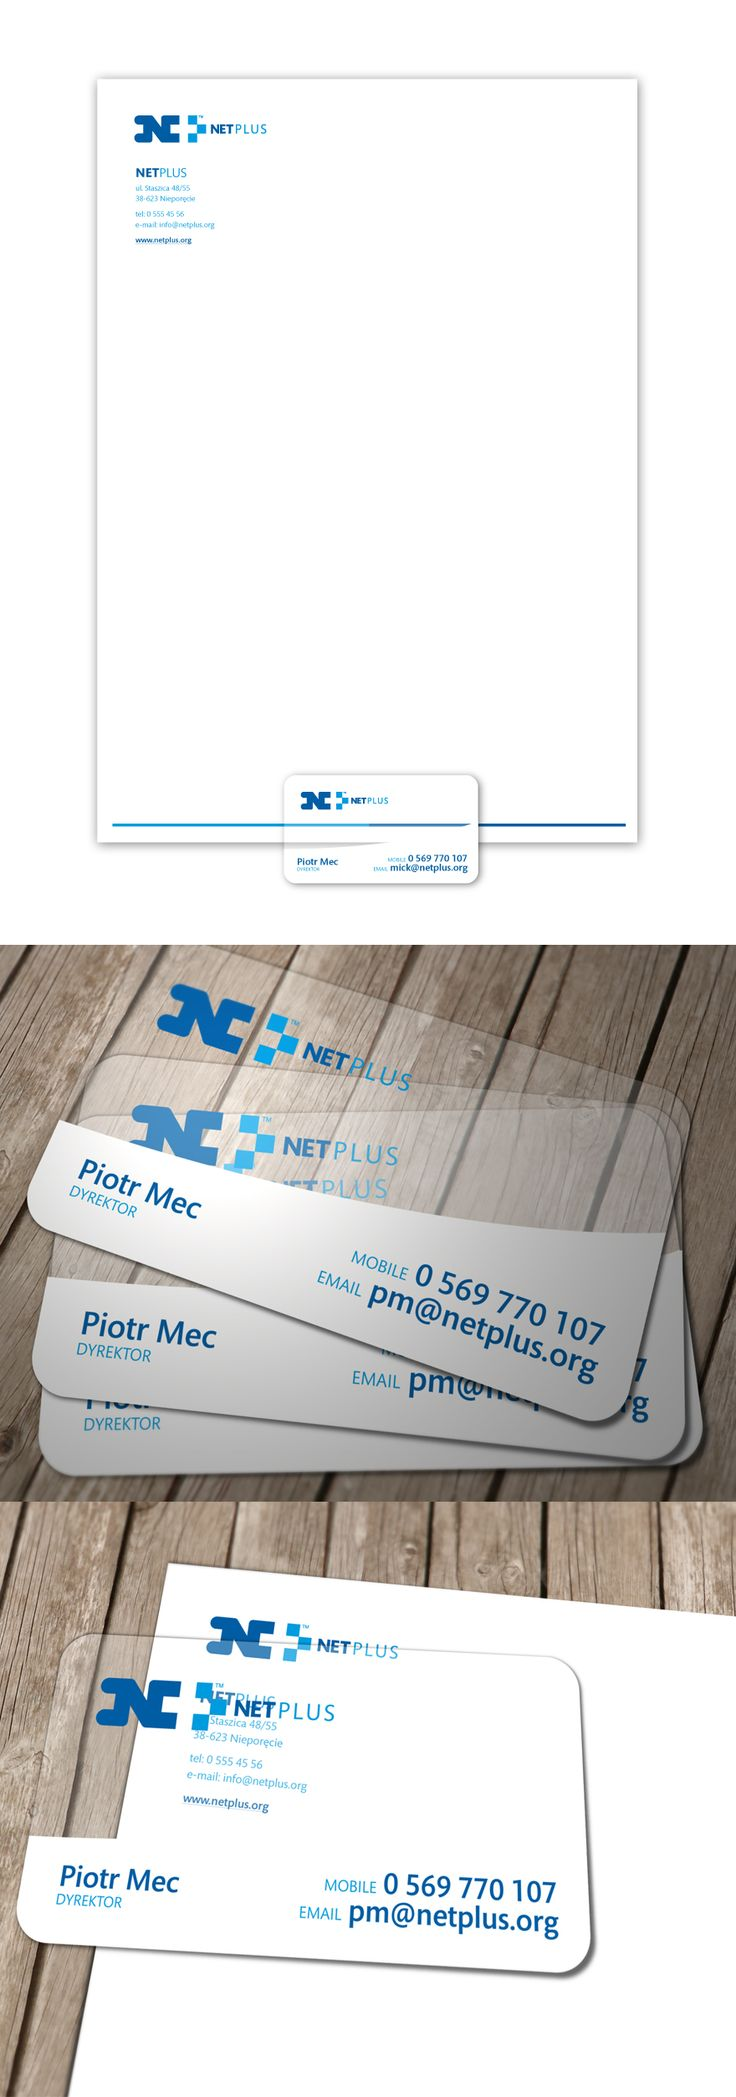 17 best transparent business cards images on pinterest transparent transparent business cards like the opaque section that highlights personal info reheart Gallery